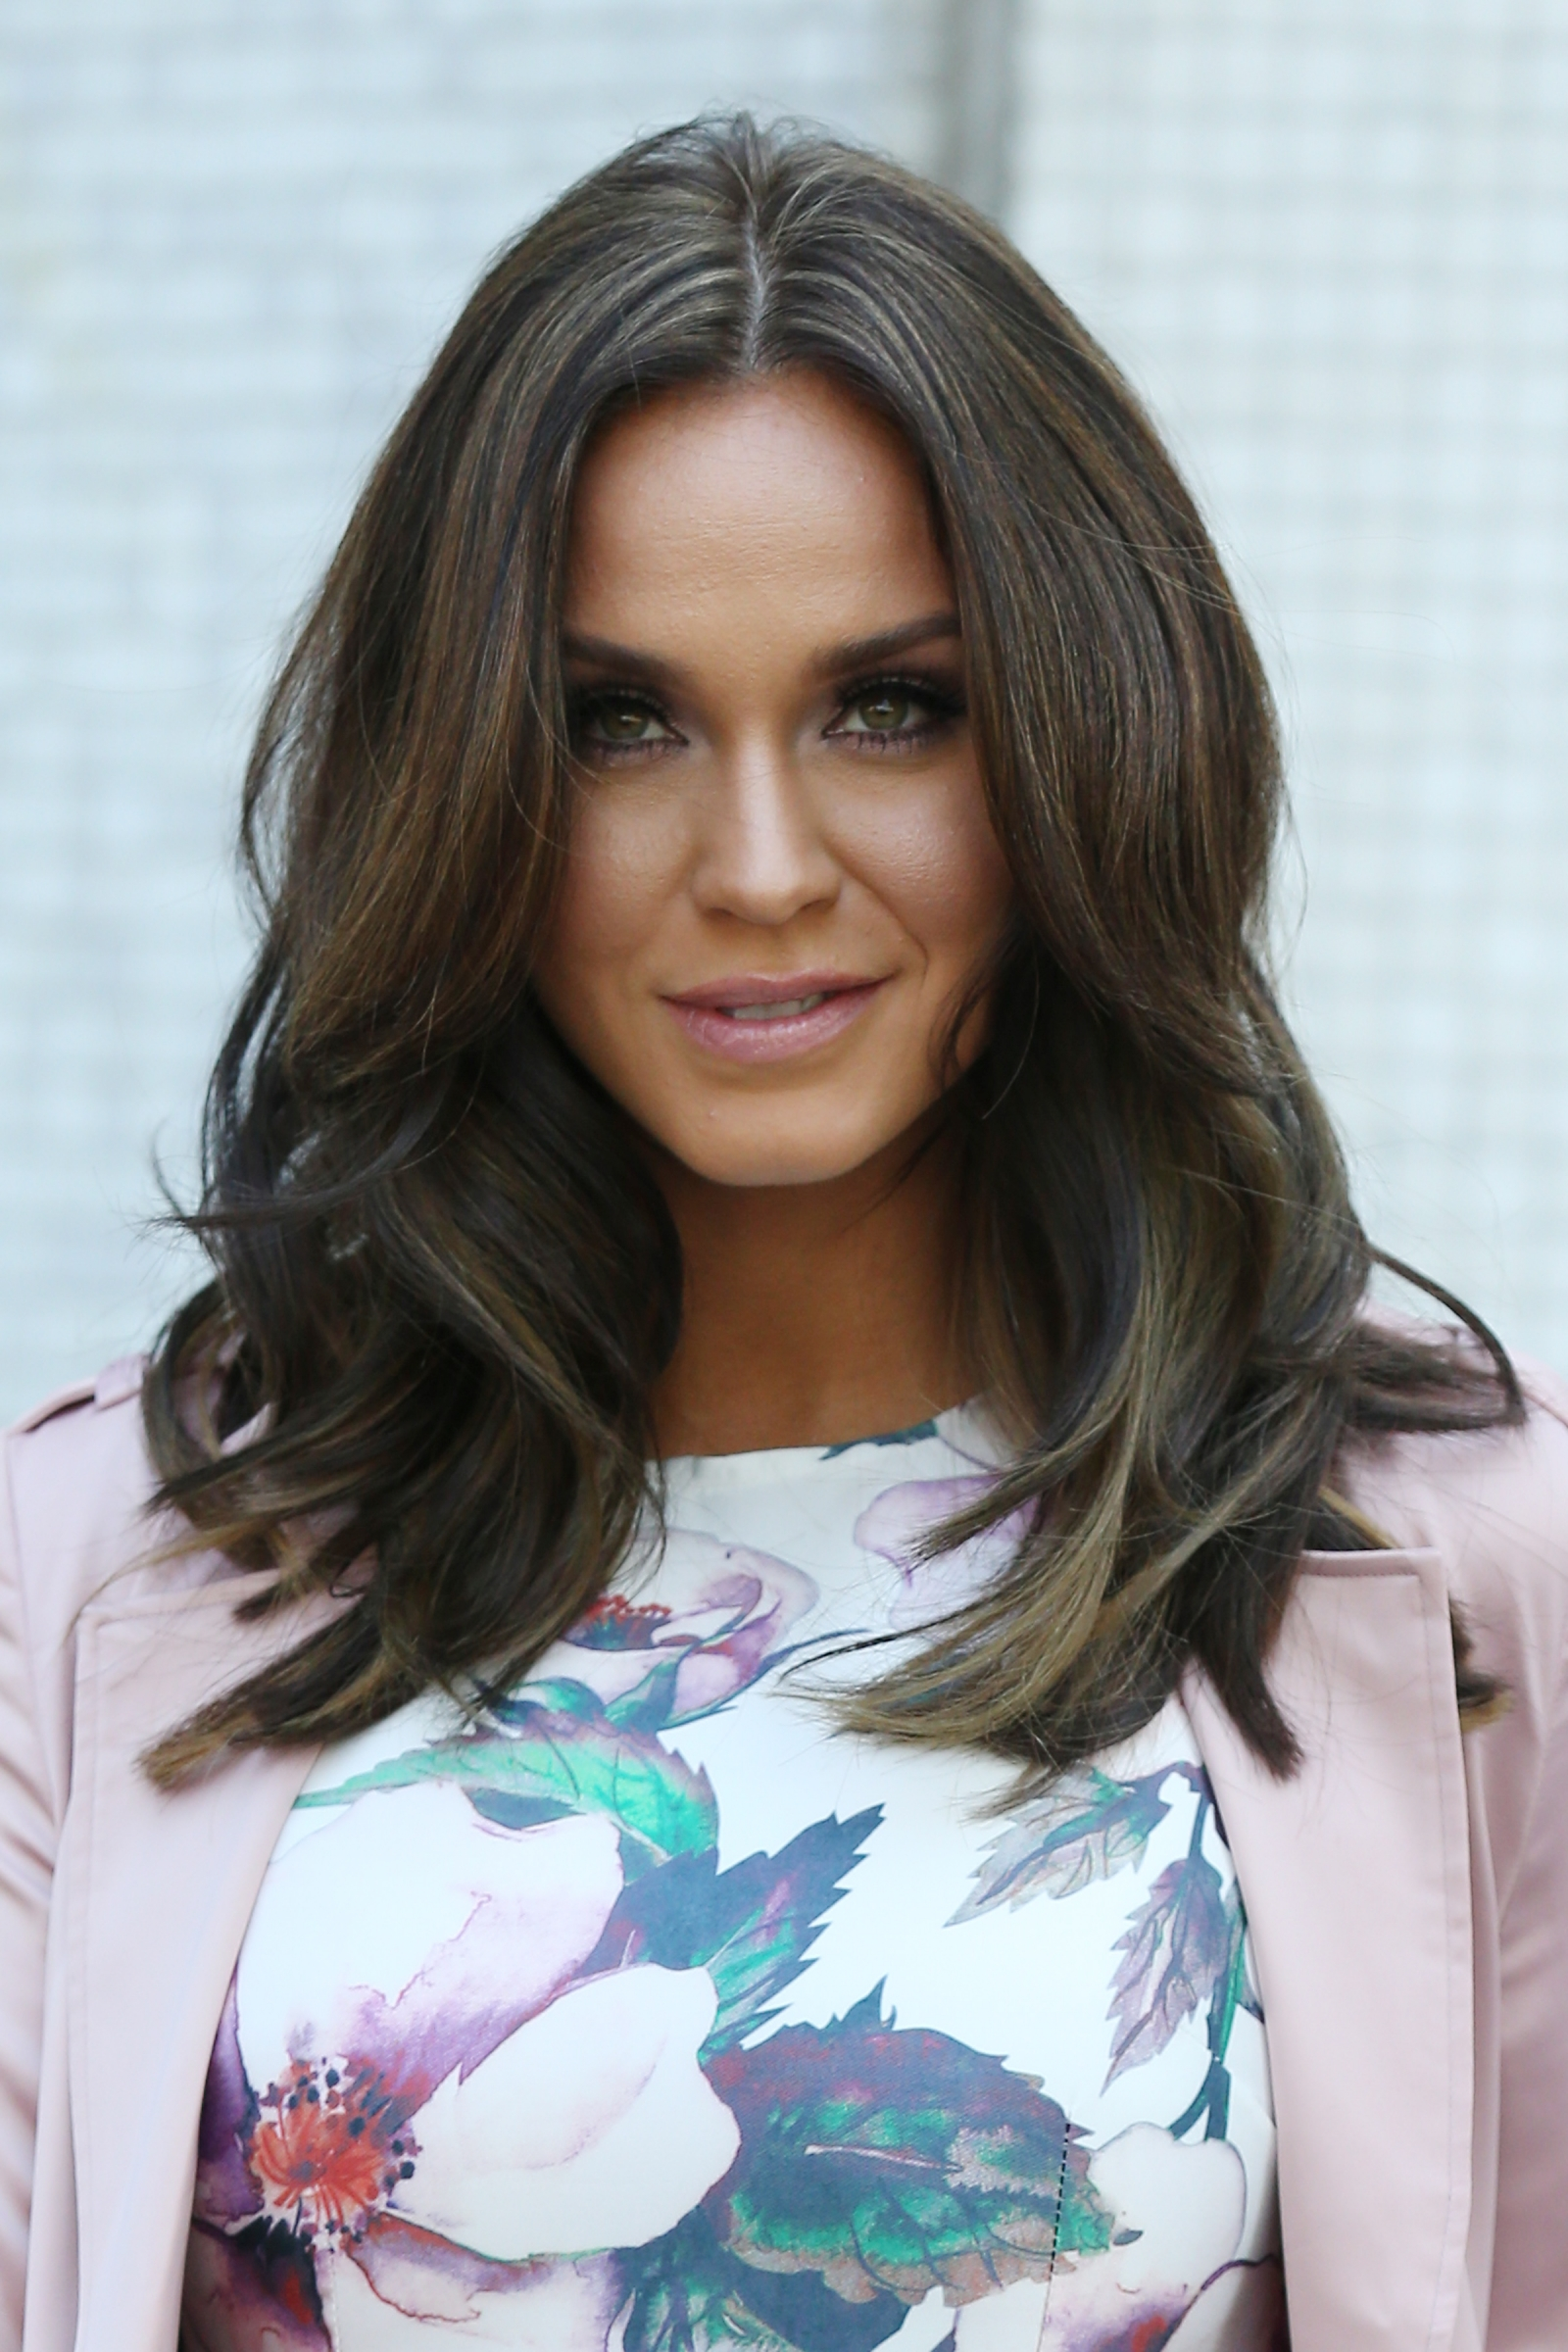 Vicky Pattinson pictured at the ITV studios